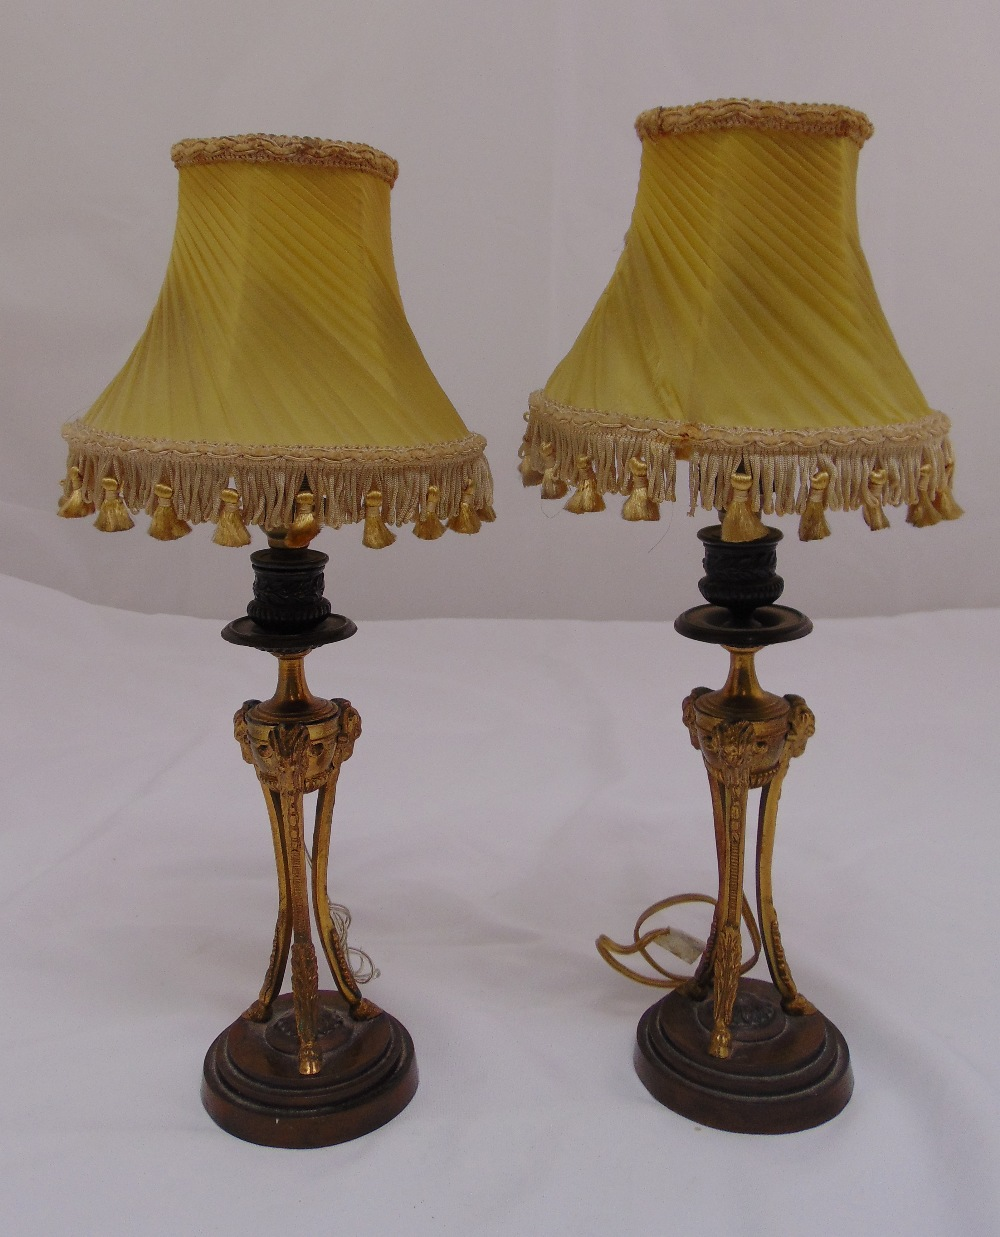 Lot 33 - A pair of gilded metal table lamp stands on raised circular bases with shades, 38cm (h)